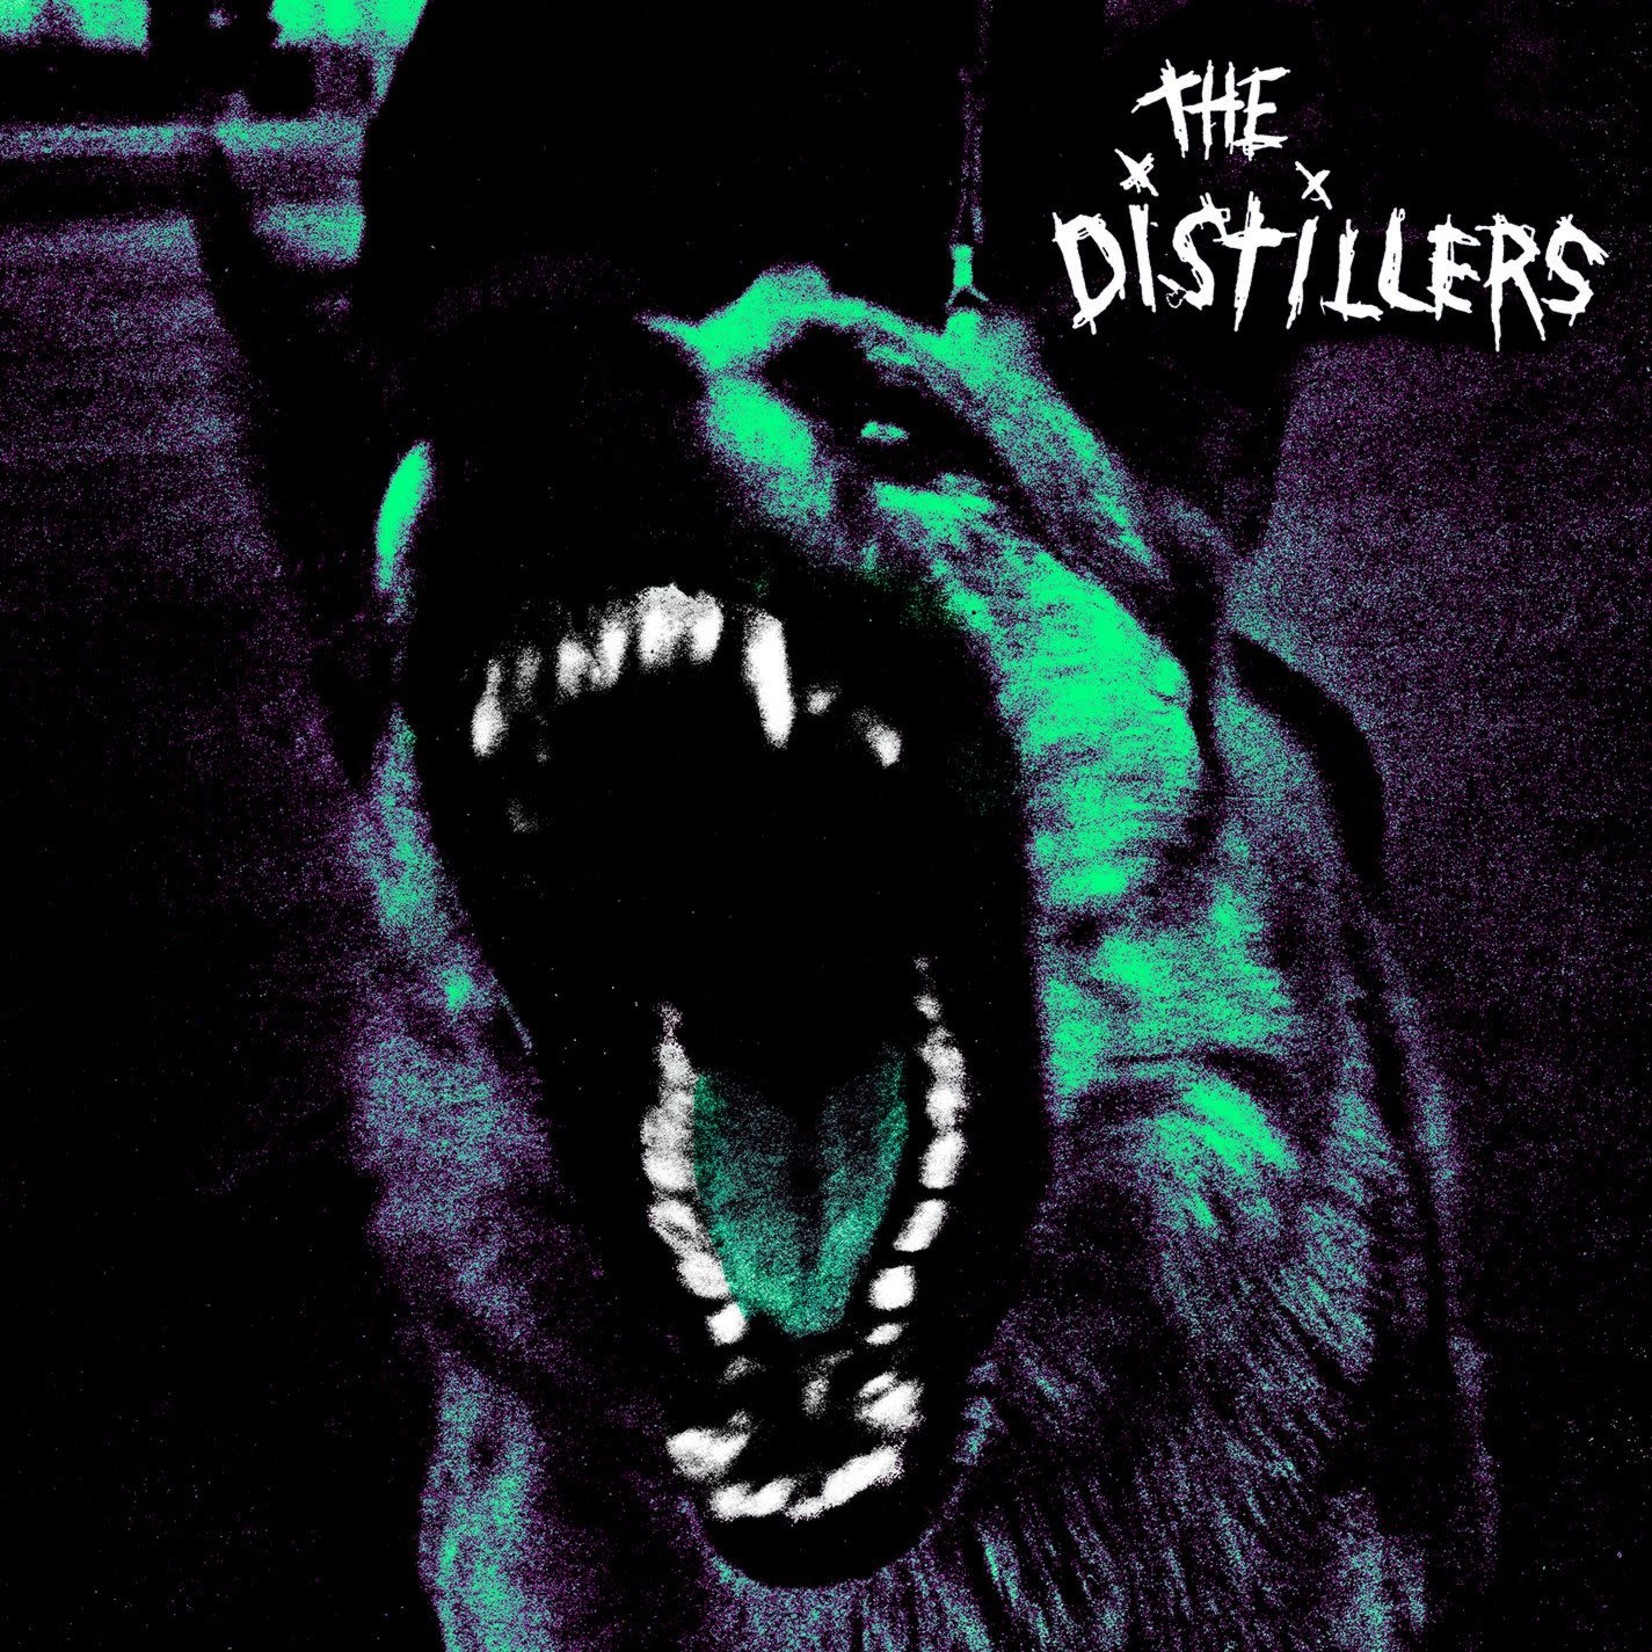 [New] Distillers: self-titled (20th Anniversary Ed., remastered, colour vinyl)